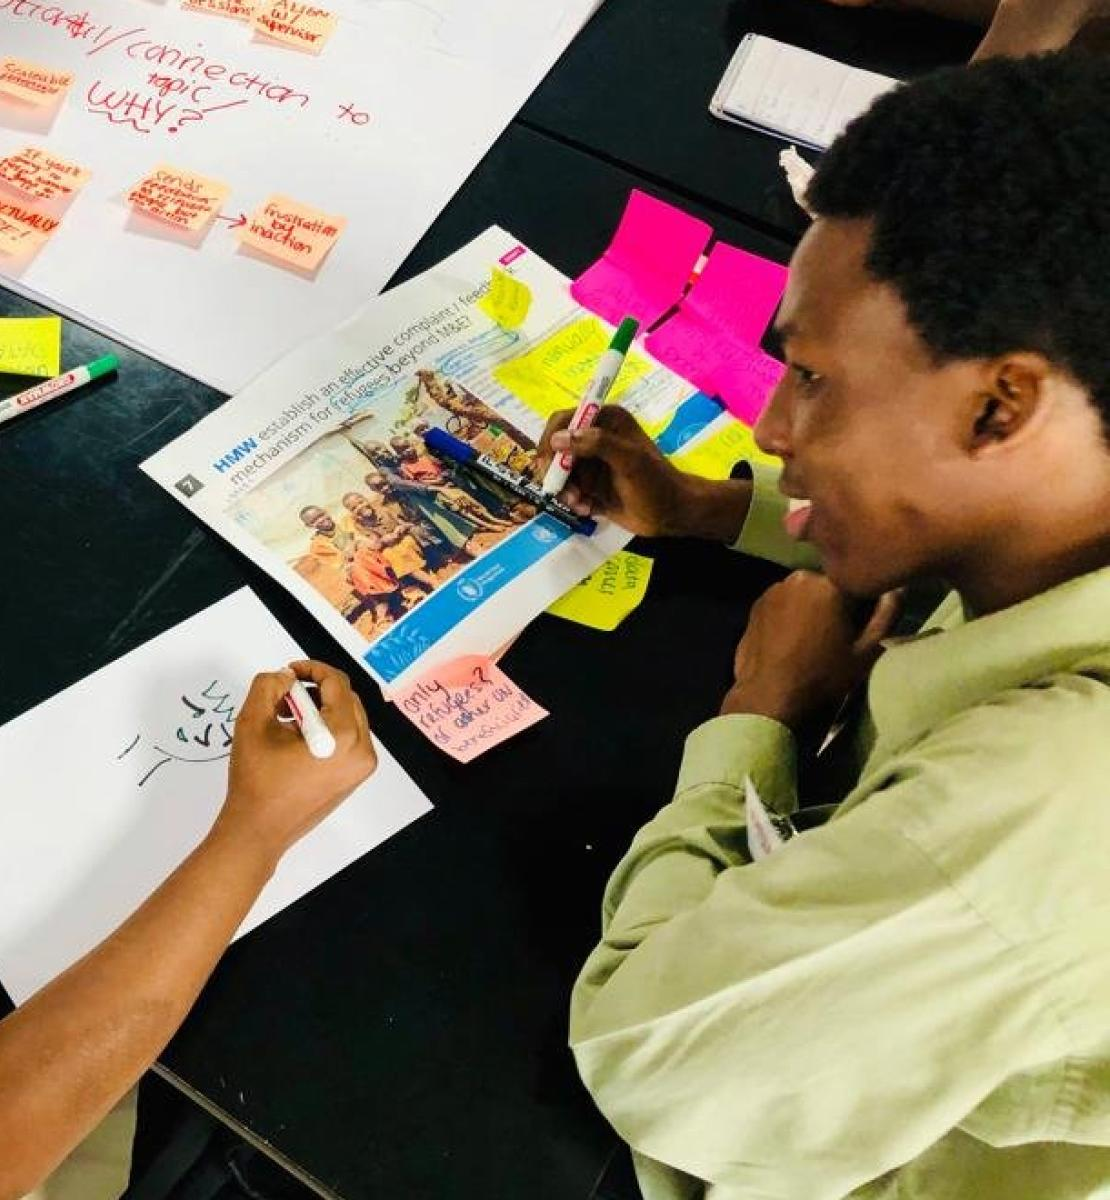 The Banner shows two young men excitingly sitting at a desk covered with post notes, water, poster board. The two are brainstorming and sketching ideas as they smile to each other.